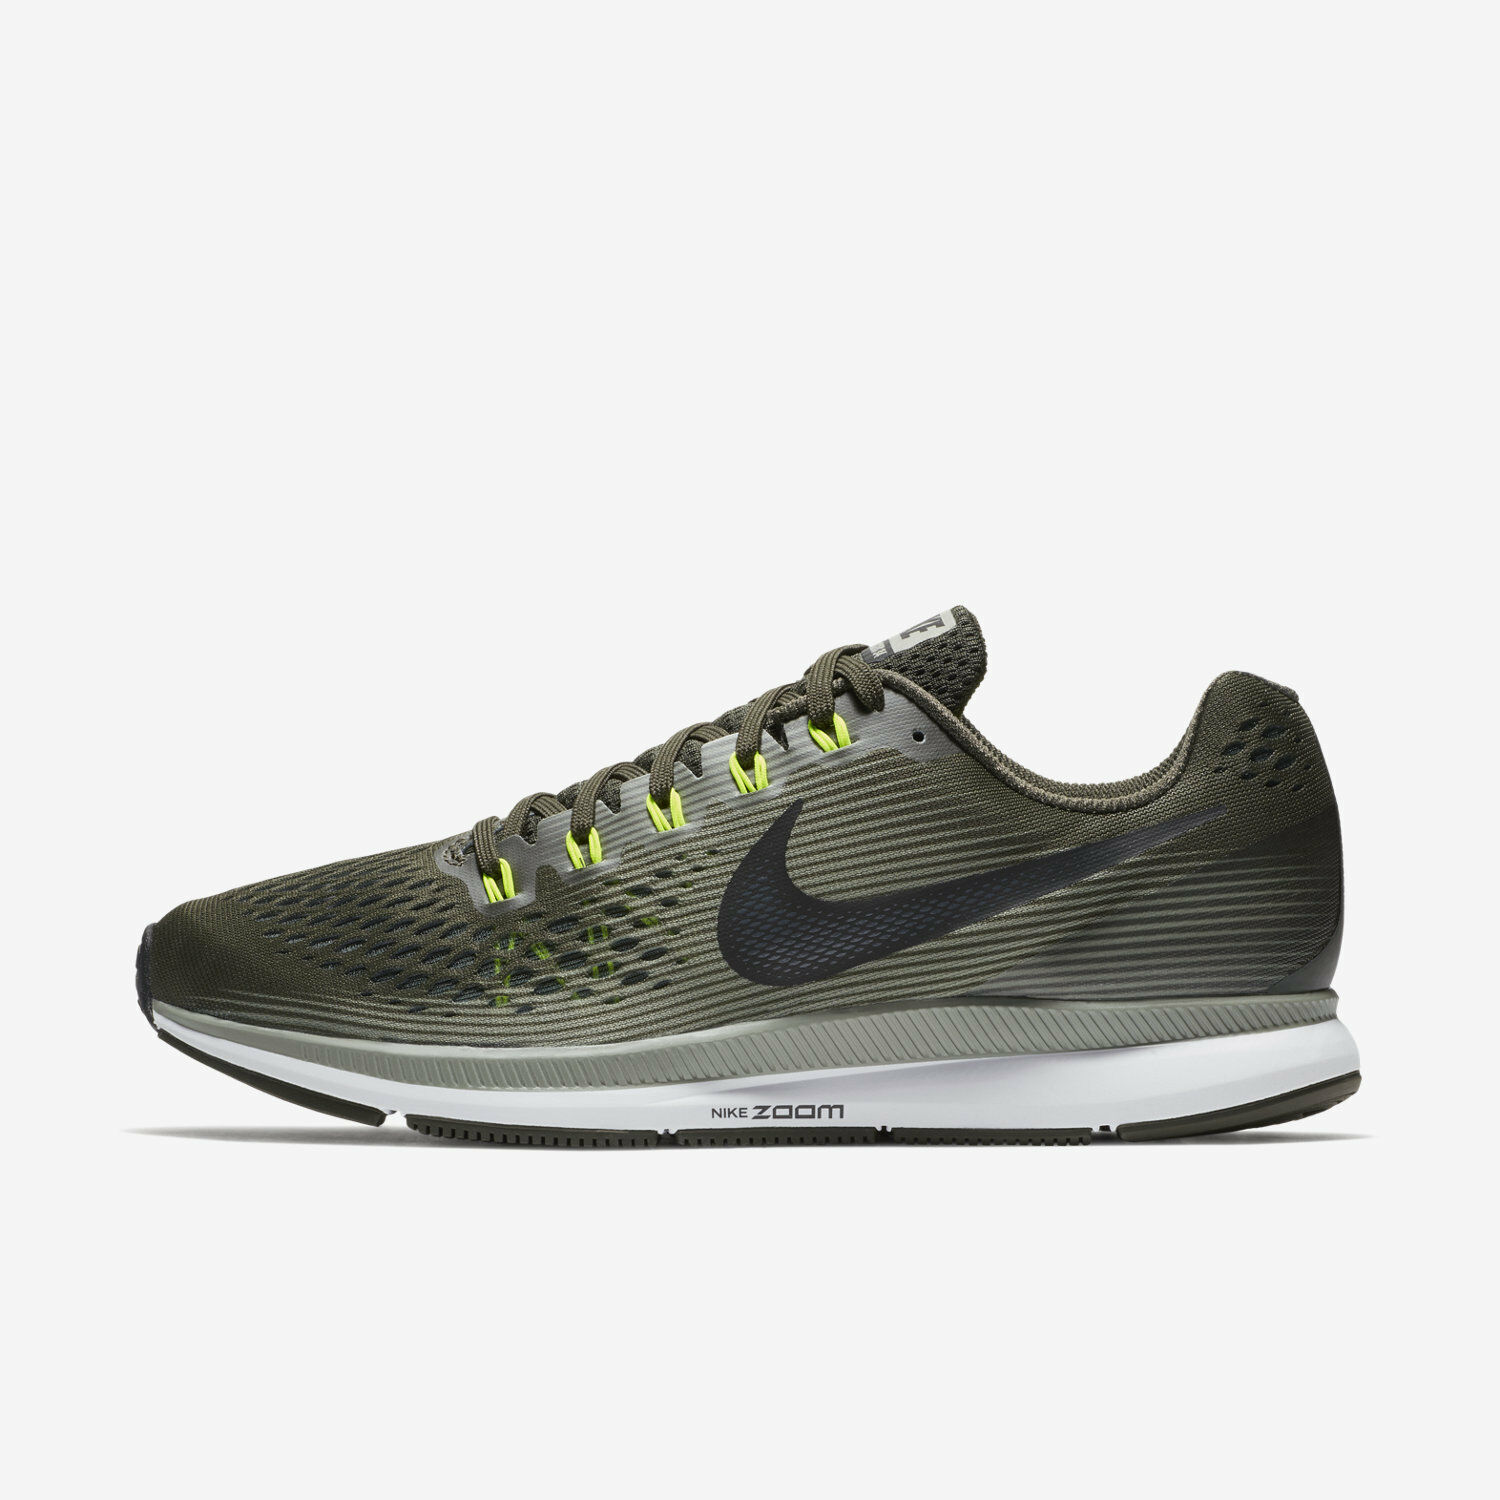 Mn Nike Air Zoom Pegasus 34 Sz 7-12.5 Sequoia Stucco Volt 880555-302 FREE SHIP